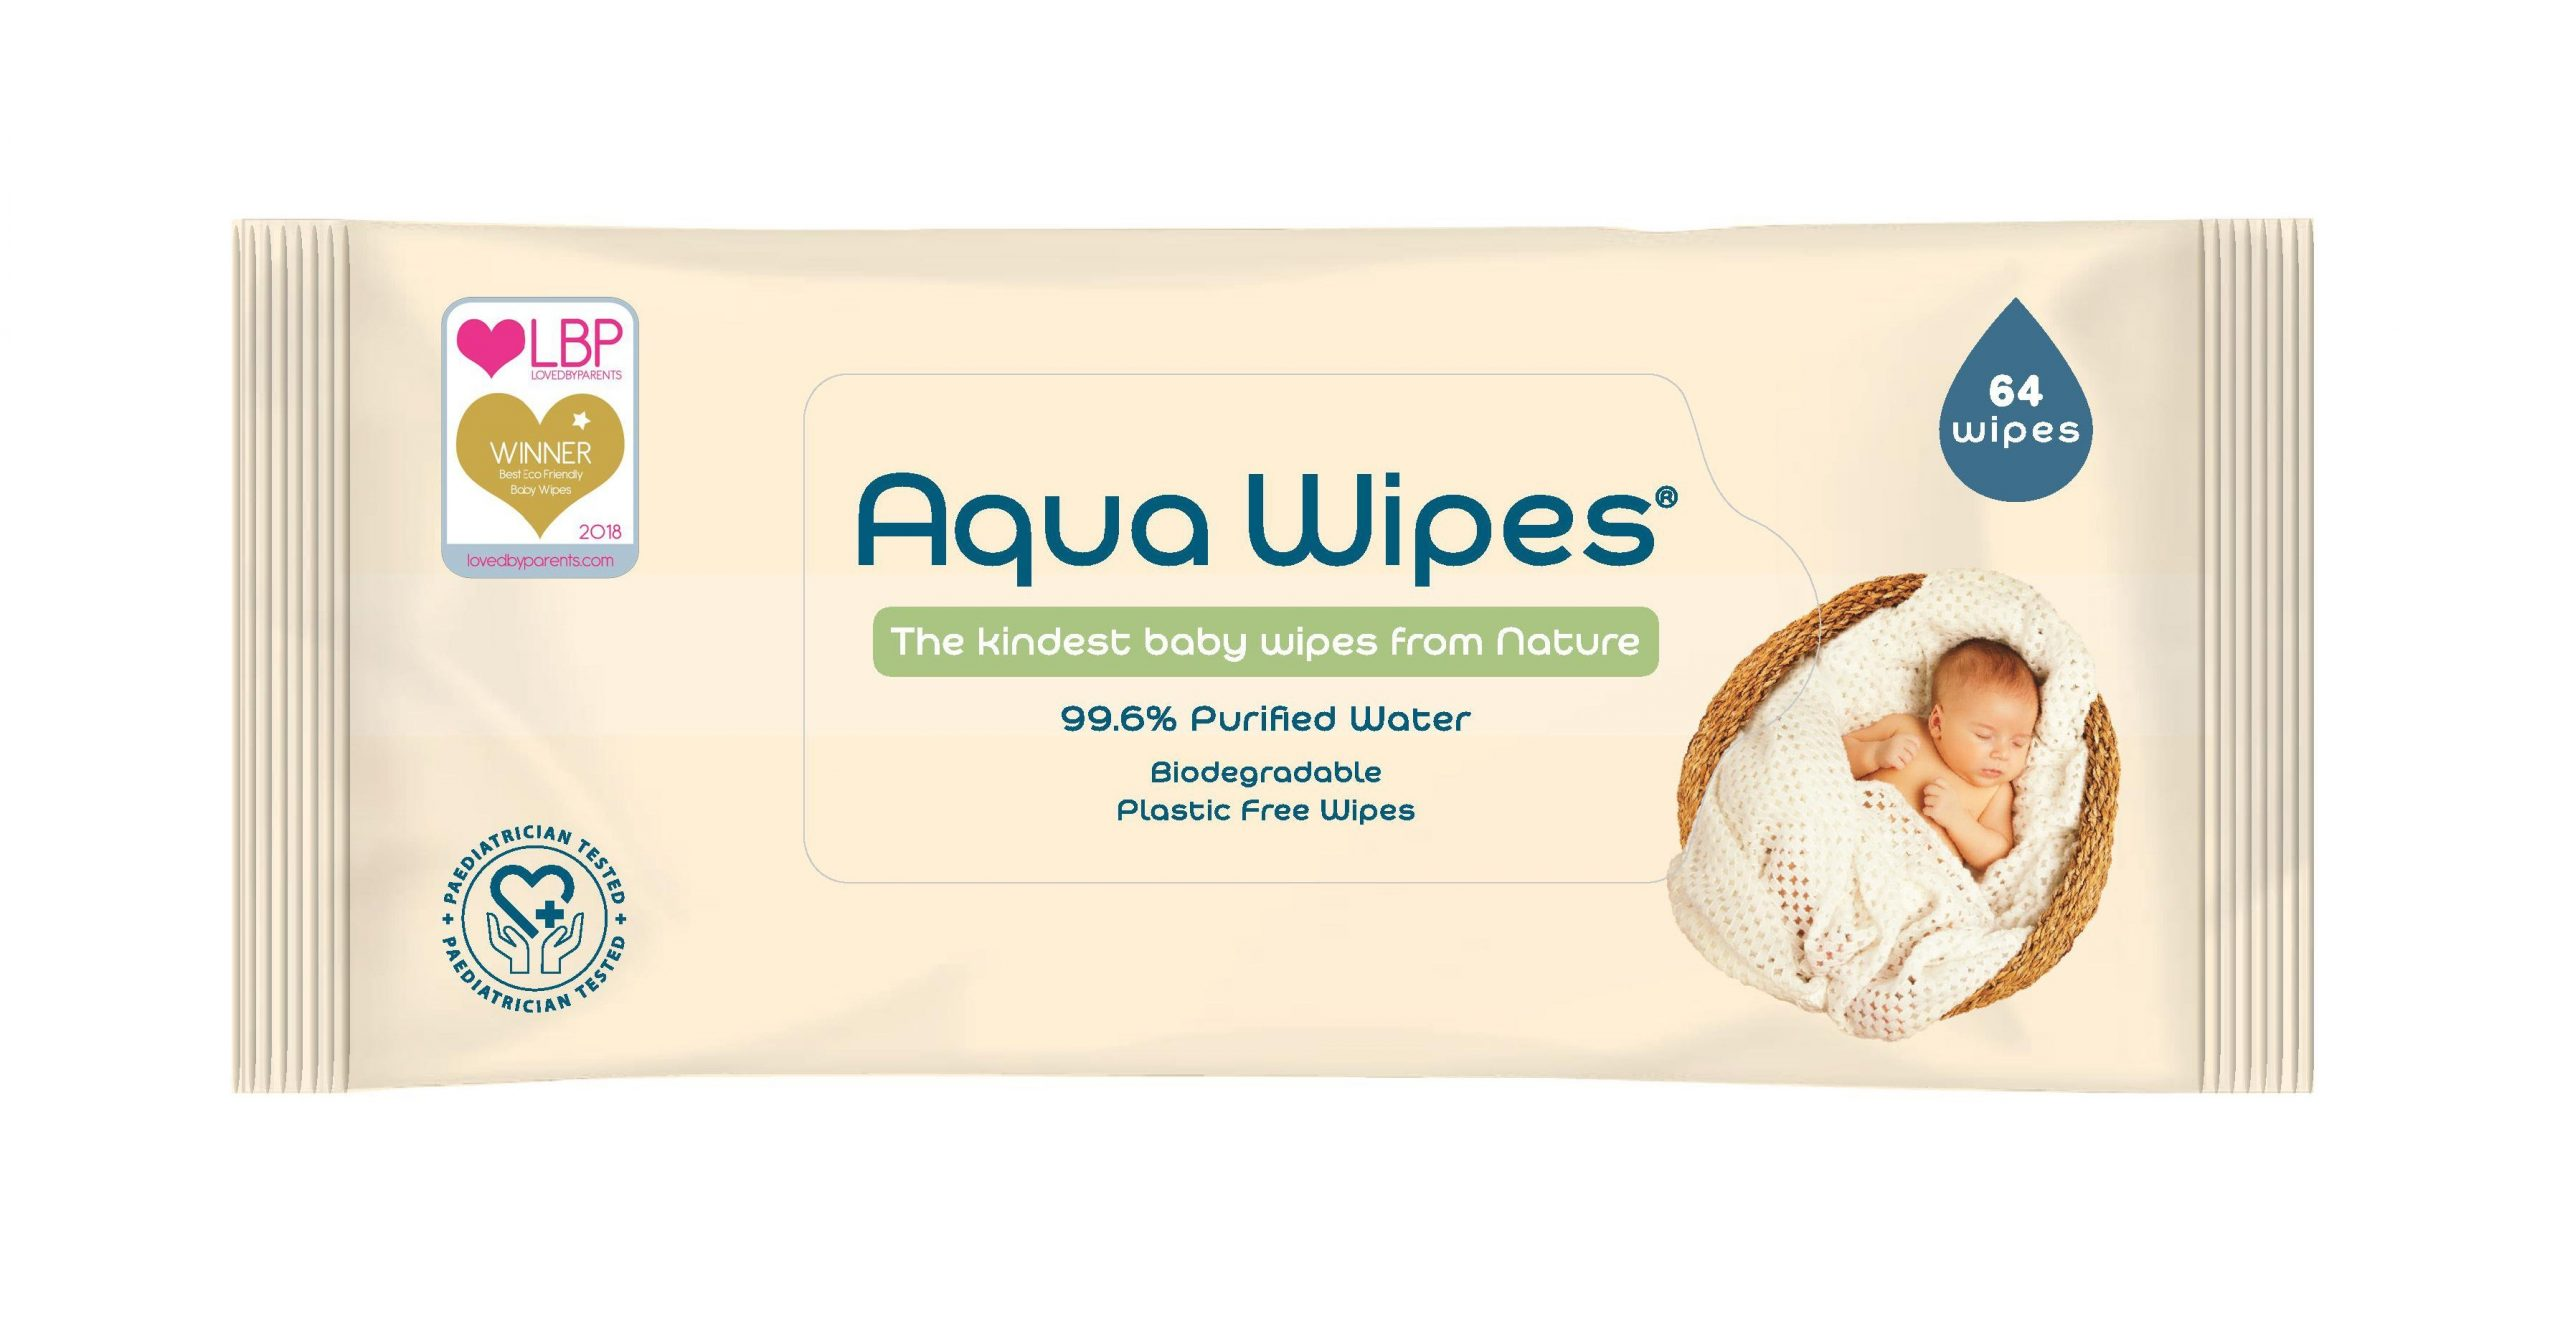 Aqua Wipes 64 wipes pack